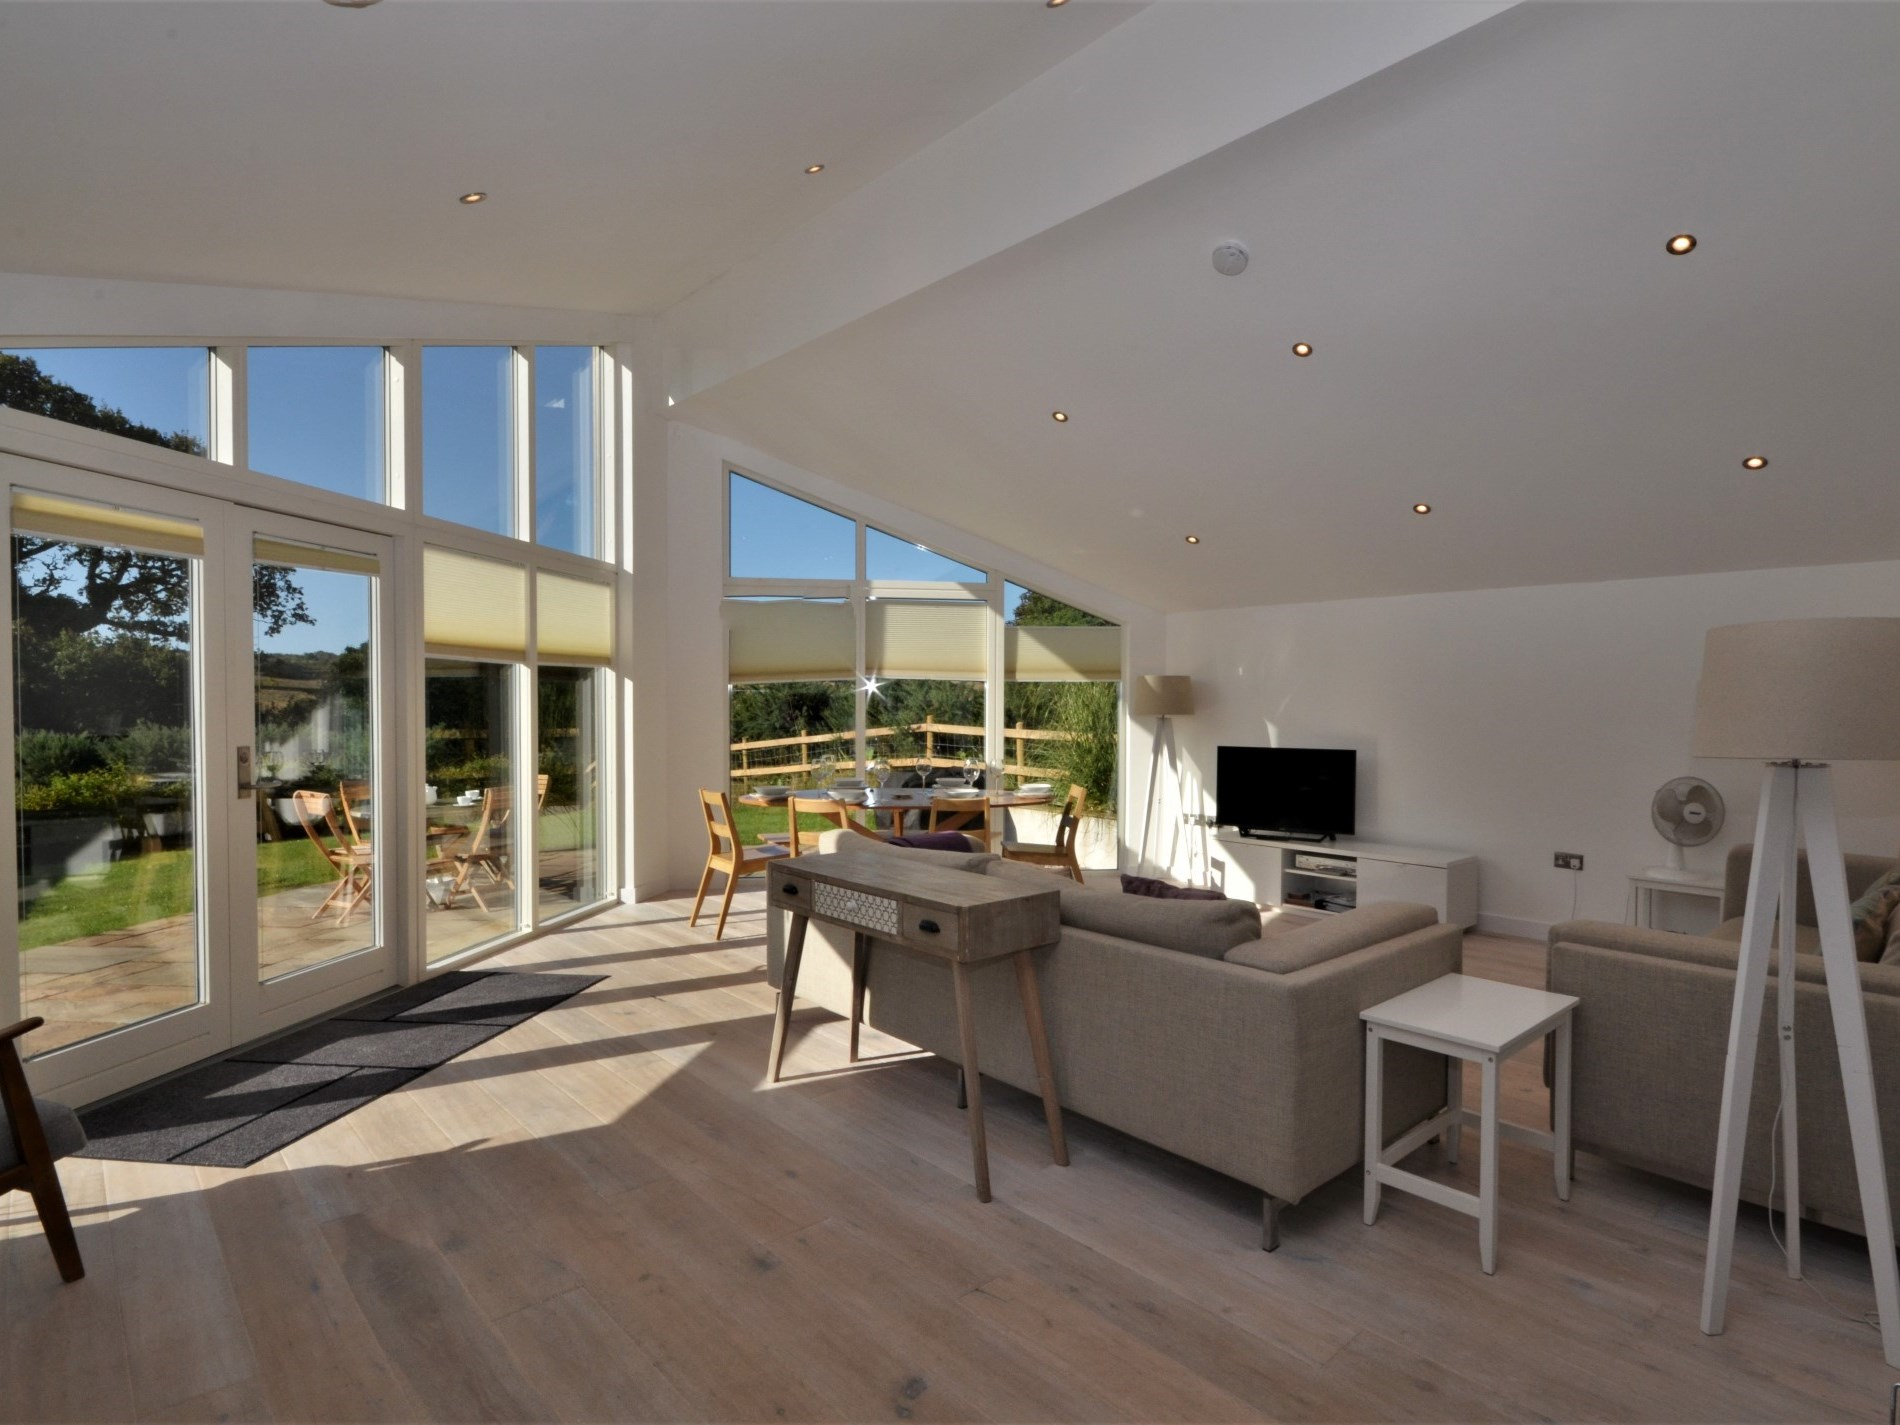 Kitchen area with countryside views